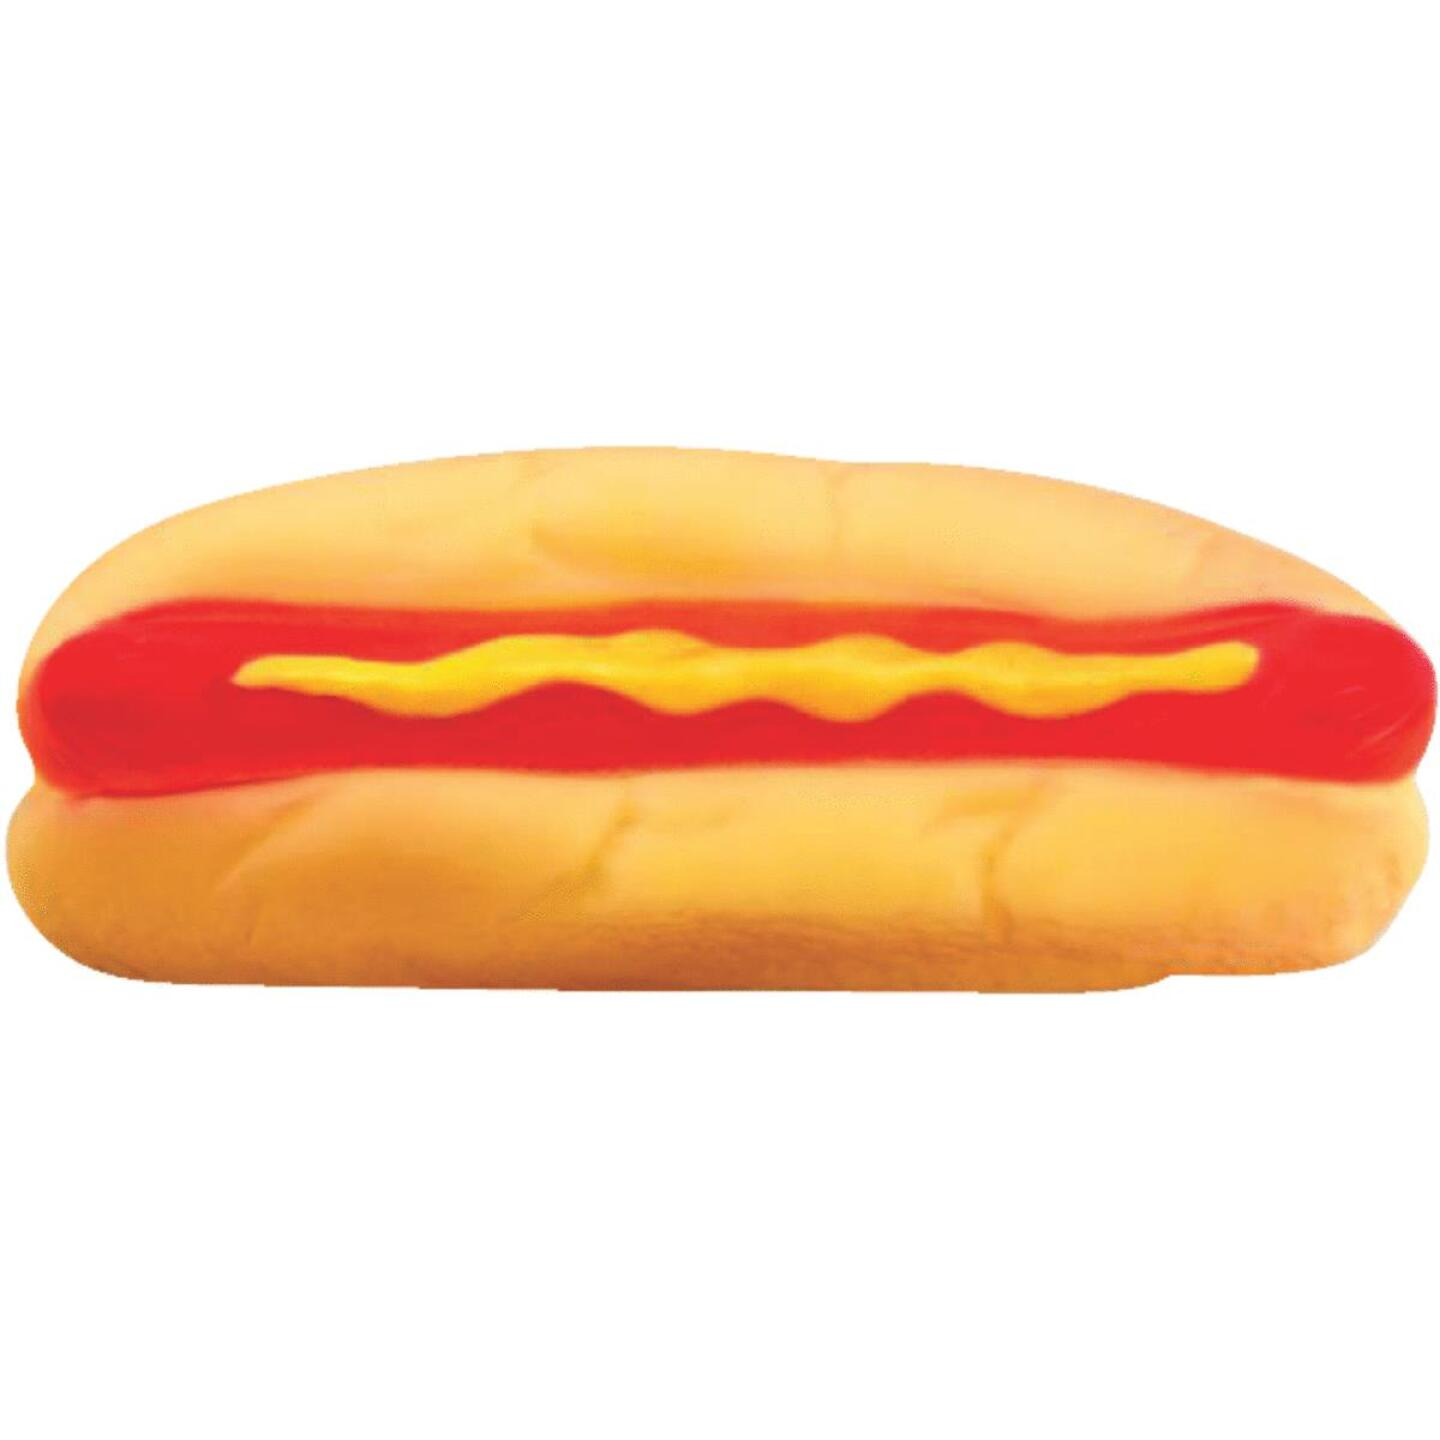 Westminster Pet Ruffin' it 1.66 In. W. x 2.0 In. H. x 5.25 In. L. Squeaky Hot Dog Vinyl Dog Toy Image 1